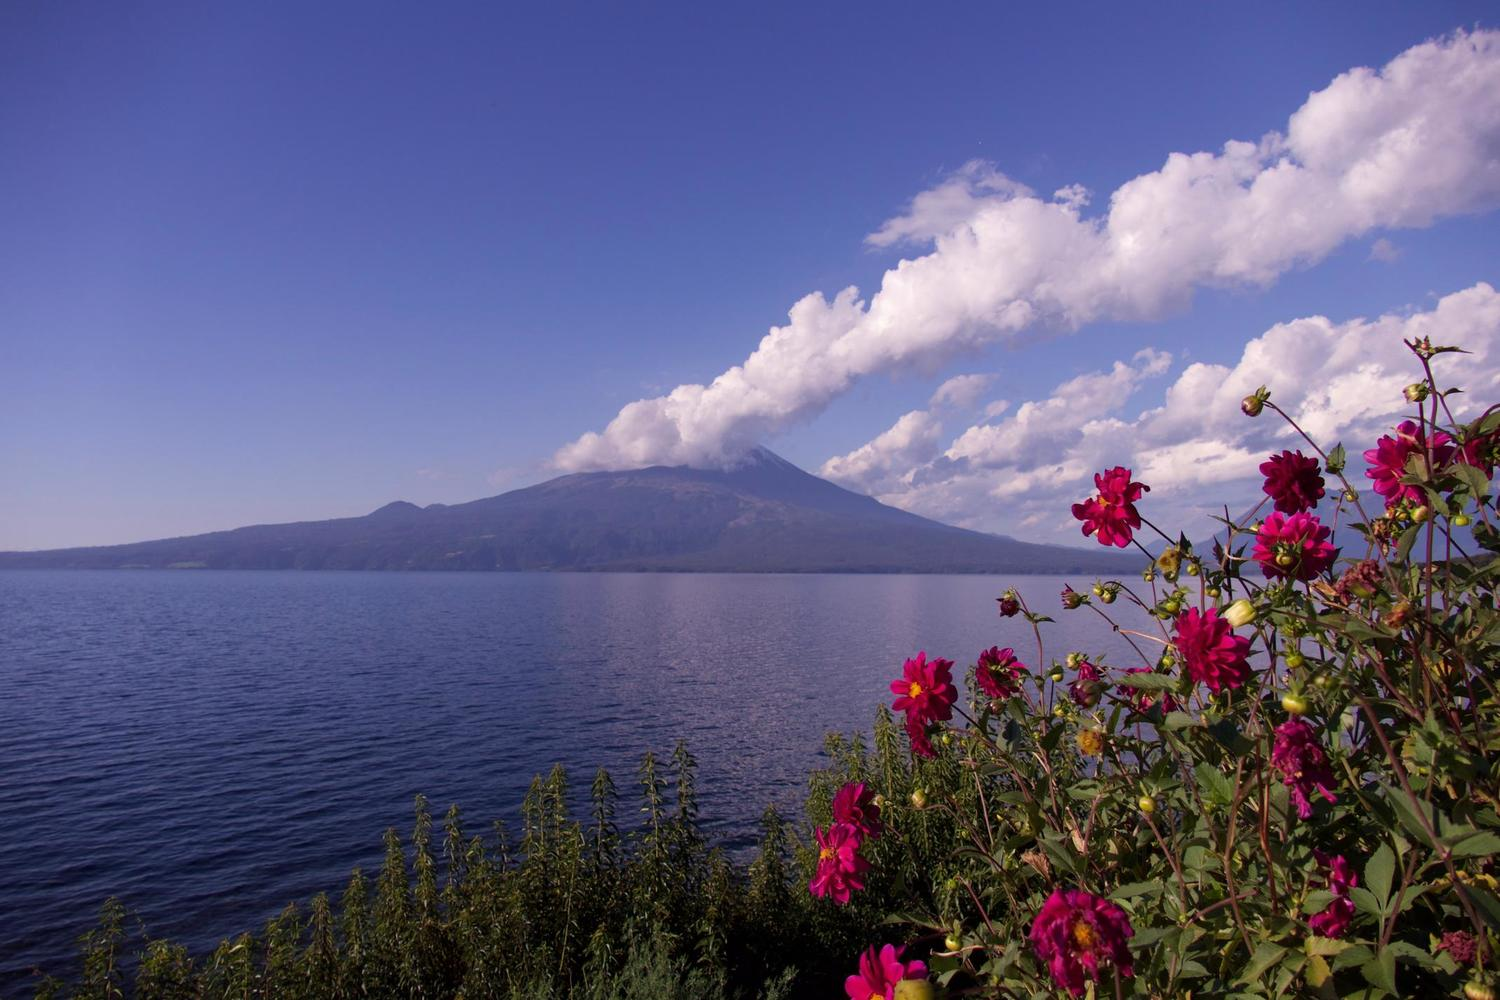 A beautiful day over Volcan Osorno in the Chilean Lake District